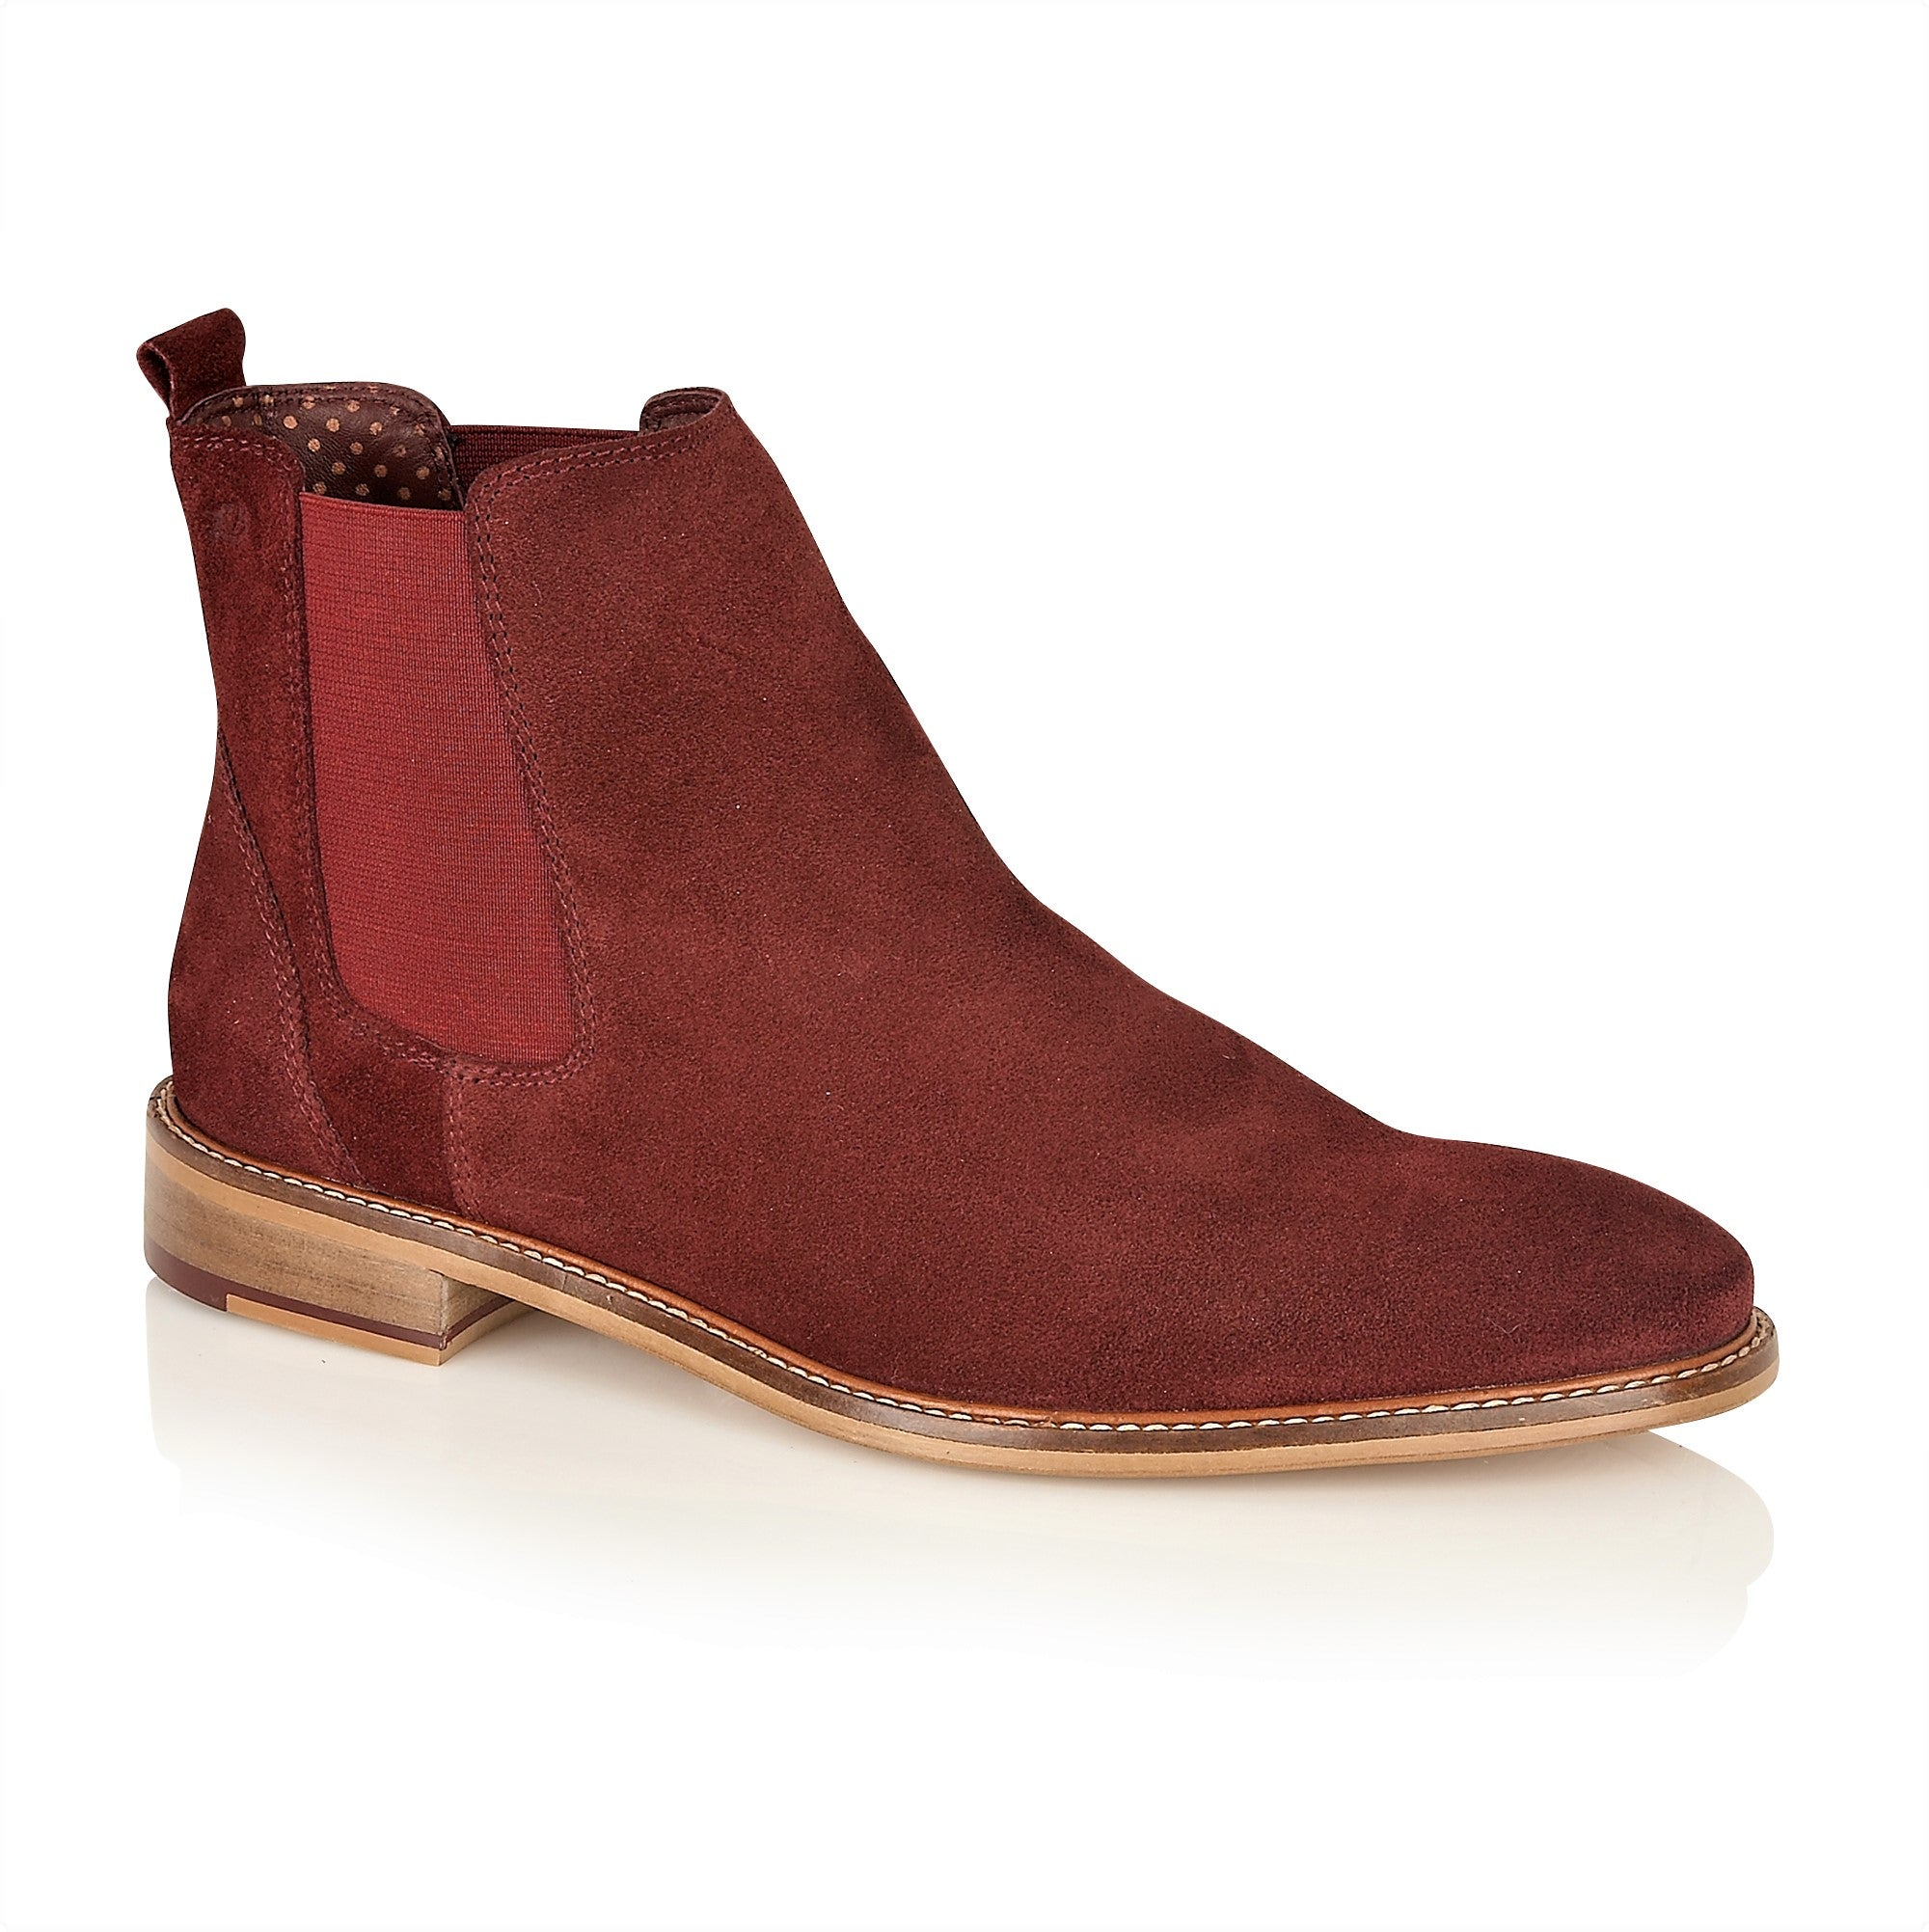 Hamilton Suede Chelsea Boot Bordo, Boots, London Brogues  - London Brogues